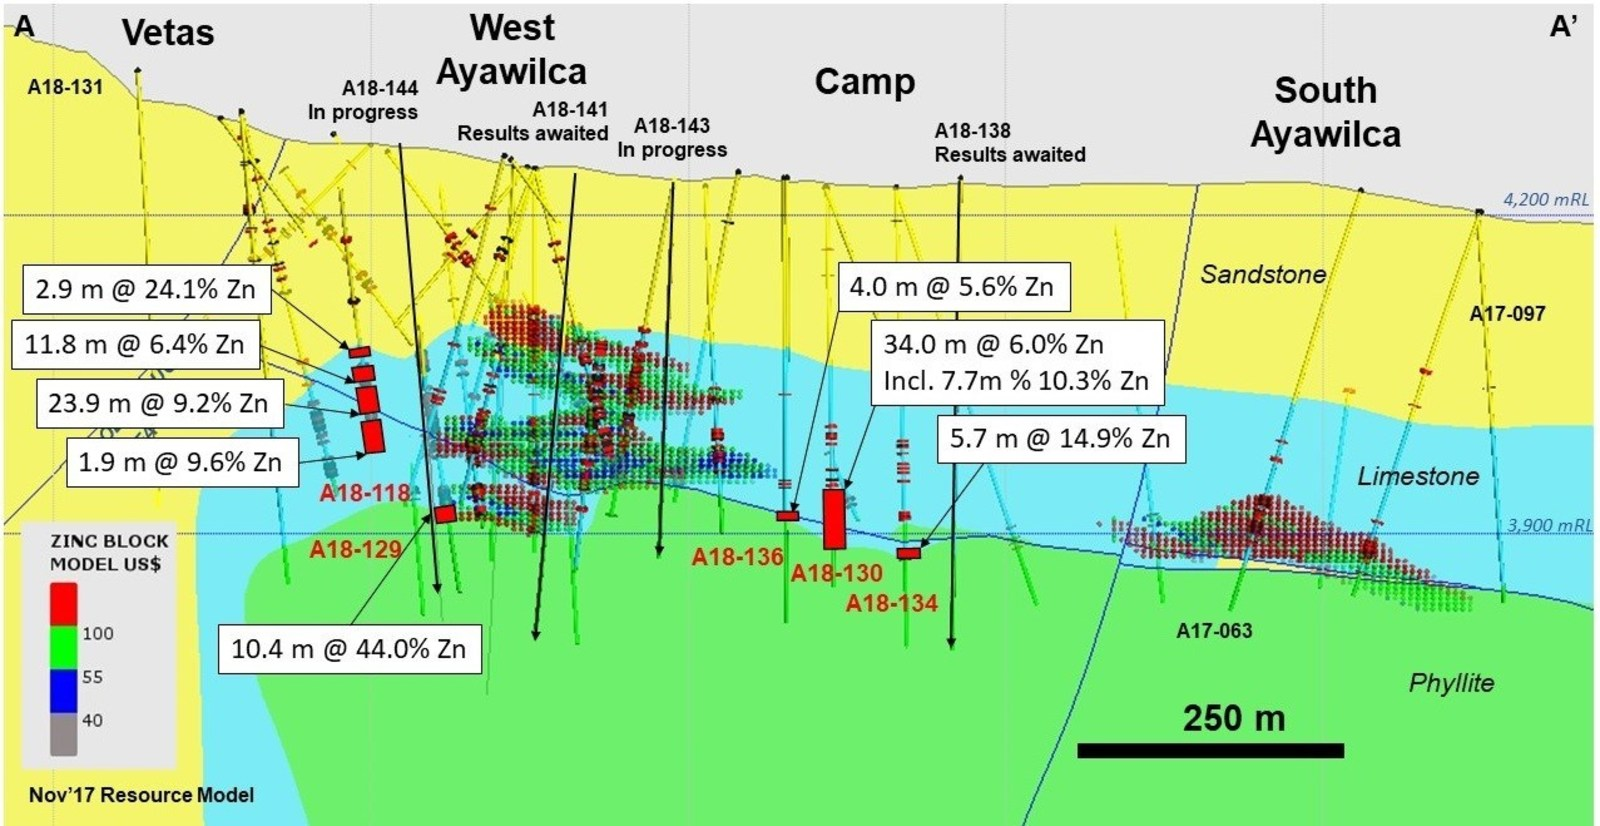 Figure 3.  Cross section of West and South Ayawilca A-A' viewing to the northeast, highlighting the 2018 step-out drill holes which extend the West Ayawilca footprint significantly